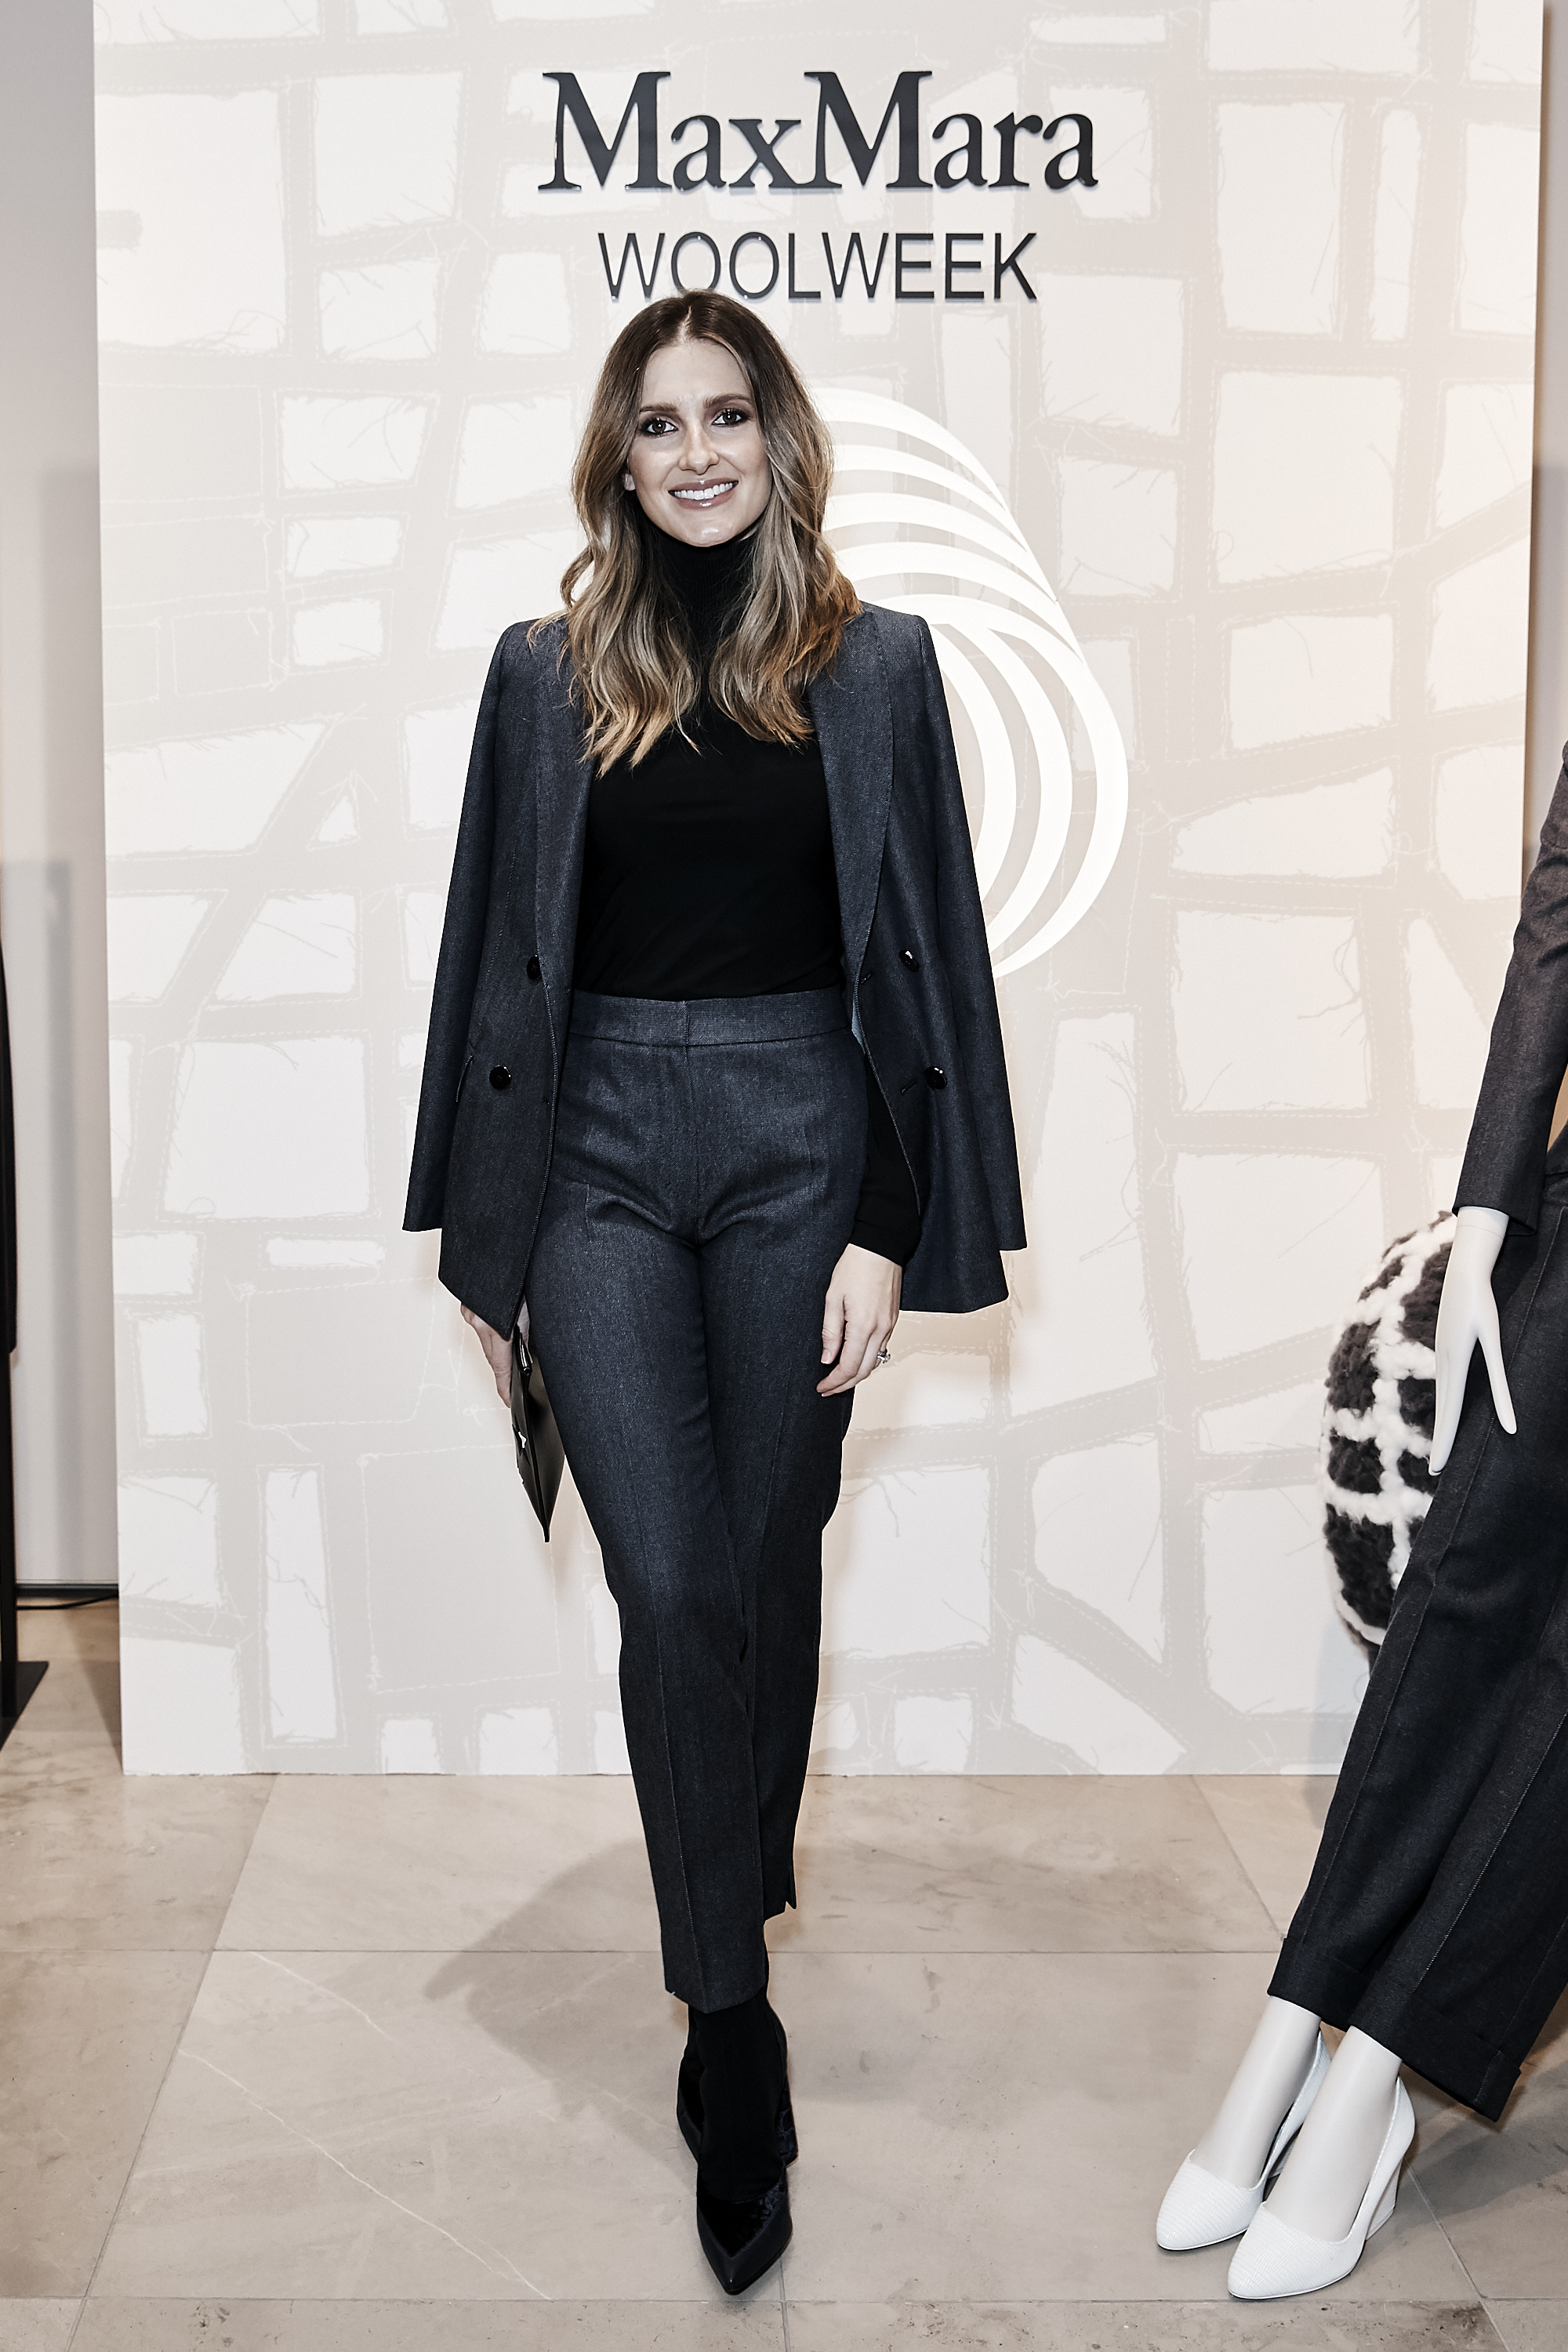 "<p>Racing heiress and fashion blogger, the ever-polite and ever-chic Kate Waterhouse, has shown that wearing double denim doesn't always have to be a disaster of Britney Spears sized proportions.</p> <p>In top-to-toe Max Mara, Kate road-tested a new fabric developed by the enduring Italian fashion label using Merino Wool. The wool blend looks like denim but still has the warmth and softness delivered off the back of Australian sheep. </p> <p>To celebrate the collection landing at Max Mara's Sydney store, The Woolmark Company invited the local media pack to preview the fabric innovation.</p> <p>""We are very pleased to have Max Mara showcasing Merino wool at its finest,"" said The Woolmark Company managing director Stuart McCullough. ""Merino wool is a luxurious, innovative, natural fibre and Max Mara's latest Autumn/Winter collection highlights wool's modernity and global relevance in high-end fashion"".</p> <p>On hand to applaud Kate's successful interpretation of the Texan Tuxedo was Vogue Australia editor Edwina McCann, Harper's Bazaar editor Kellie Hush and Victoria's Secret model Elyse Taylor.</p>"